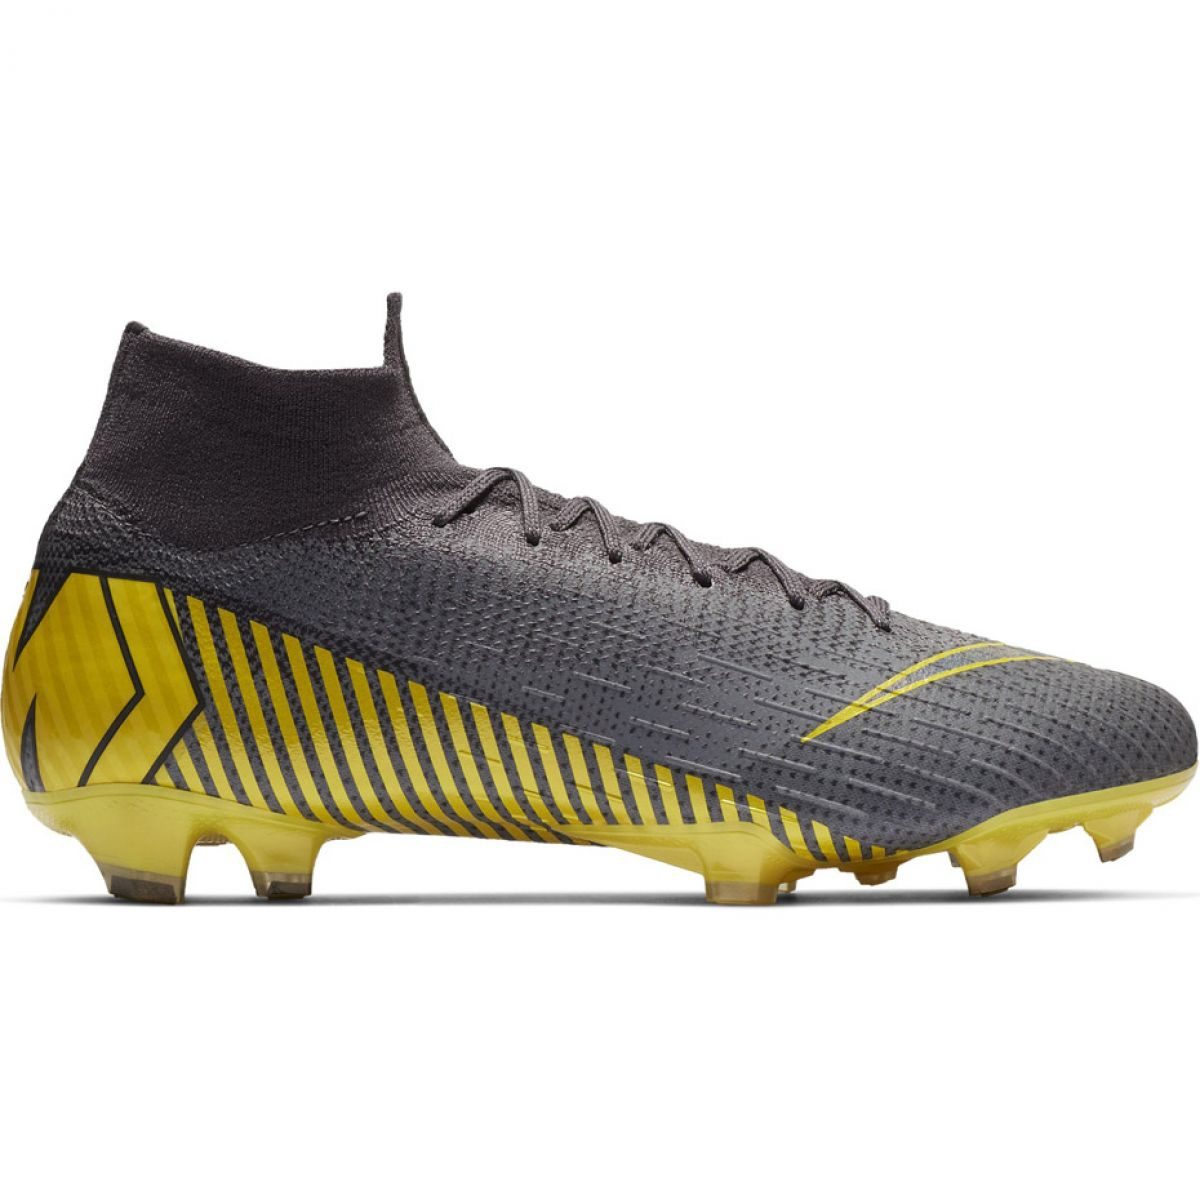 Shoes Elite Football Superfly Fg 6 M Ah7365 070 Mercurial Nike Yfy7bg6